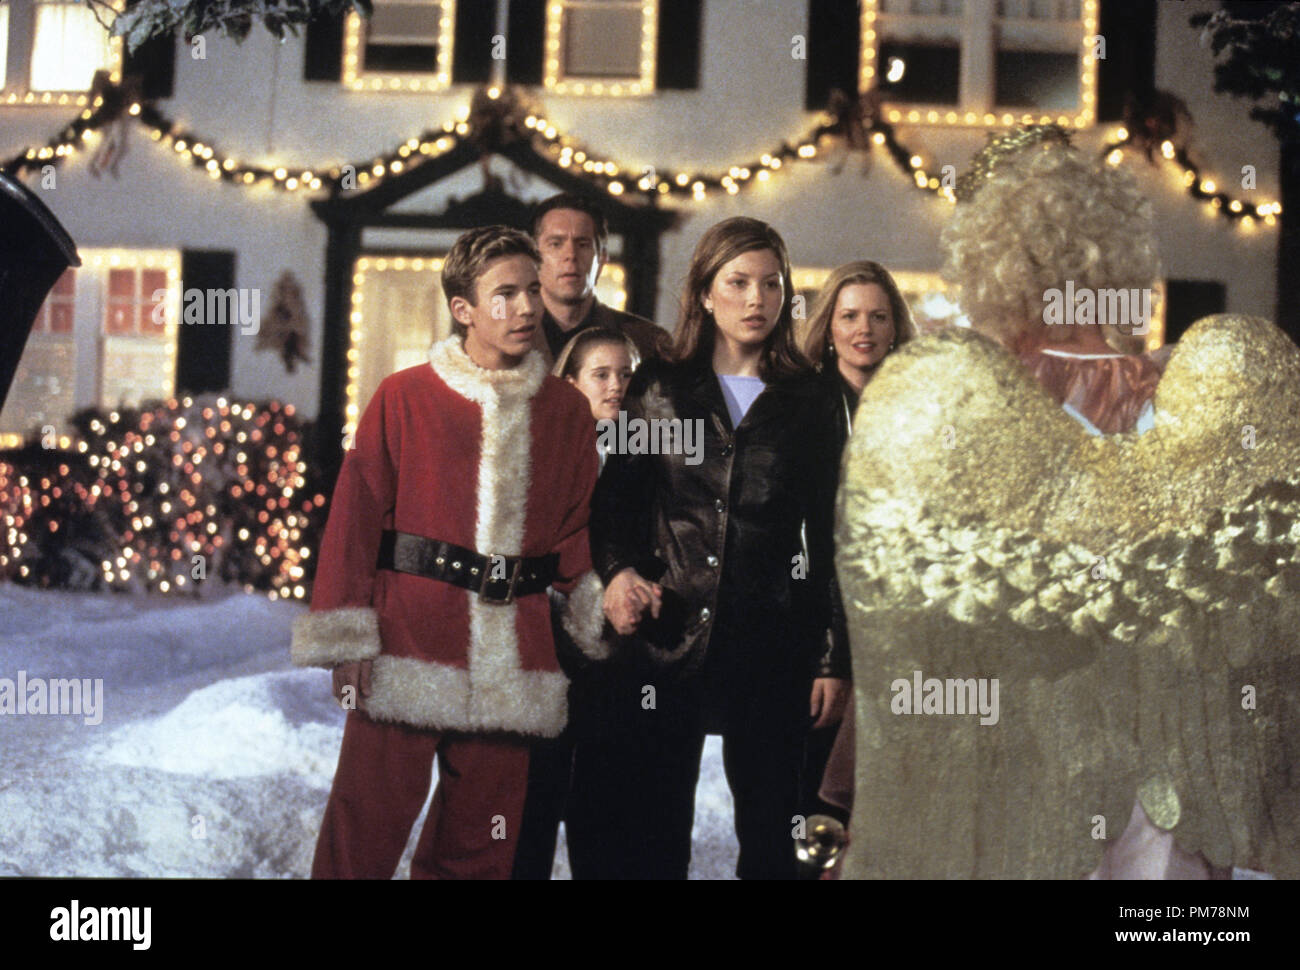 film still from ill be home for christmas jonathan taylor thomas - I Ll Be Home For Christmas Film